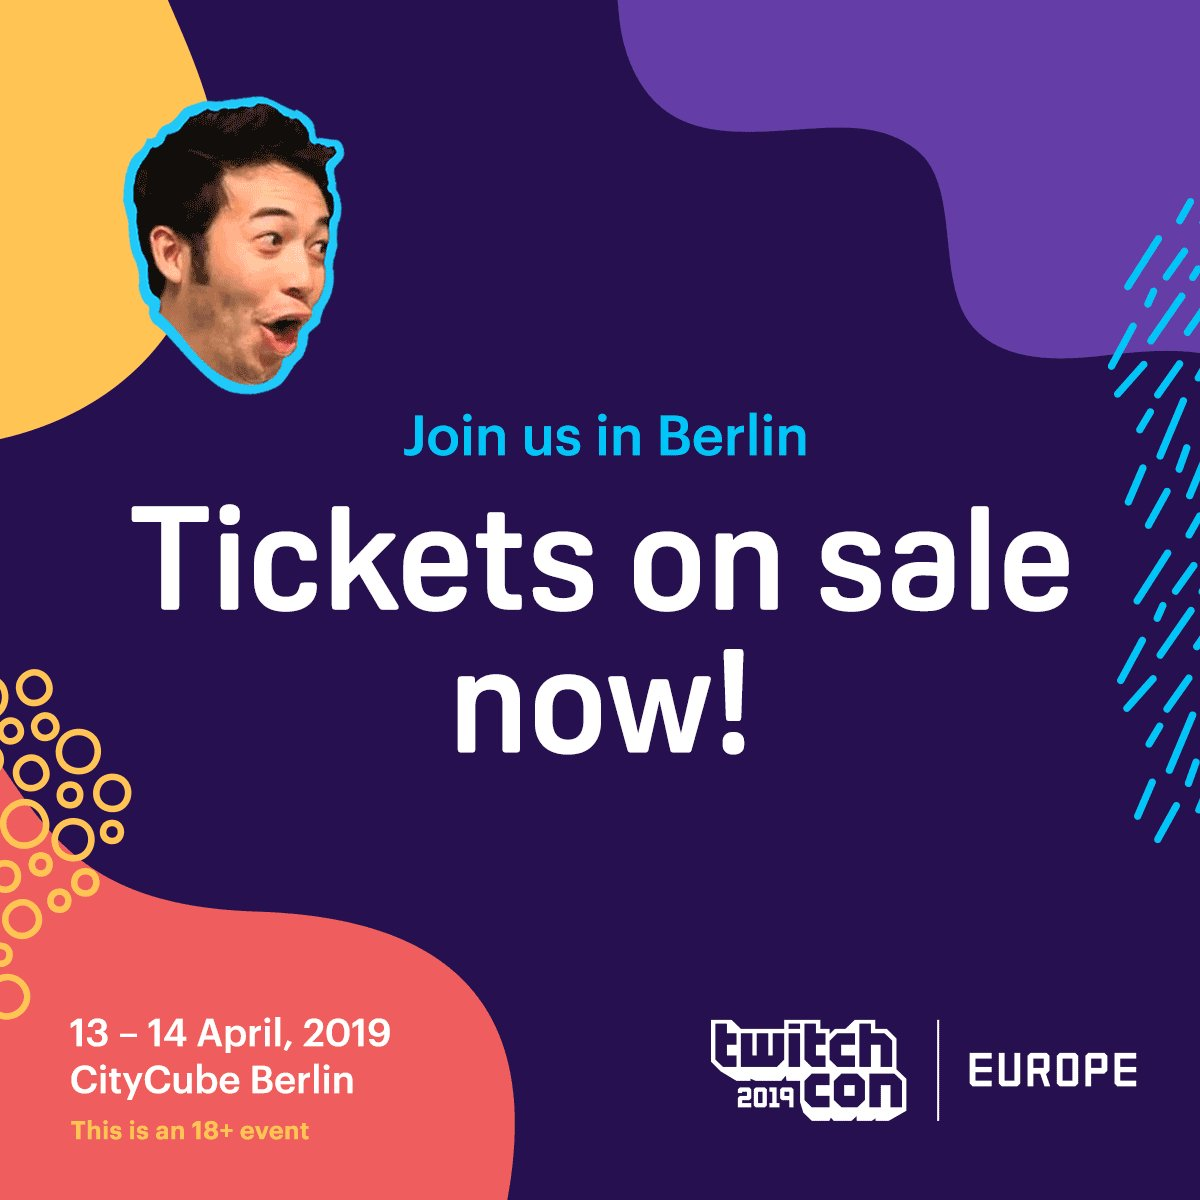 The wait is over. If you're a part of Twitch, you're officially invited to be a part of the very first TwitchCon Europe. Get your tickets NOW and join us in Berlin: https://buytickets.to/twitchcon